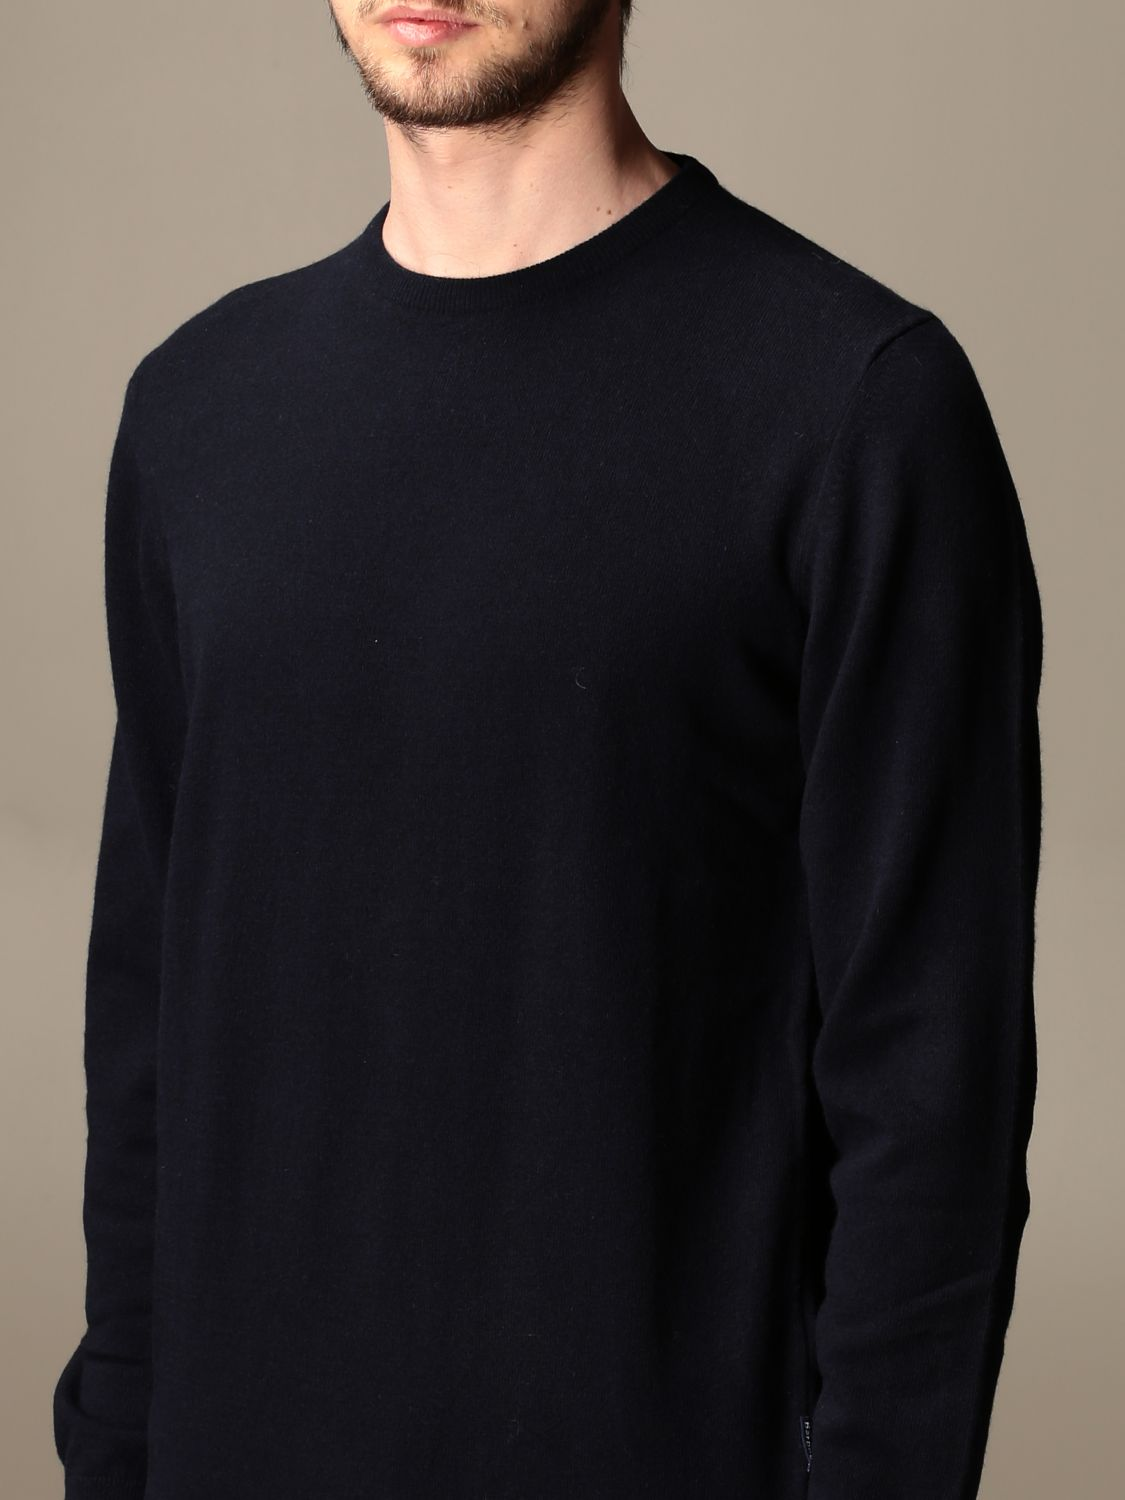 Sweater Barbour: Barbour crewneck sweater with tartan patches blue 3